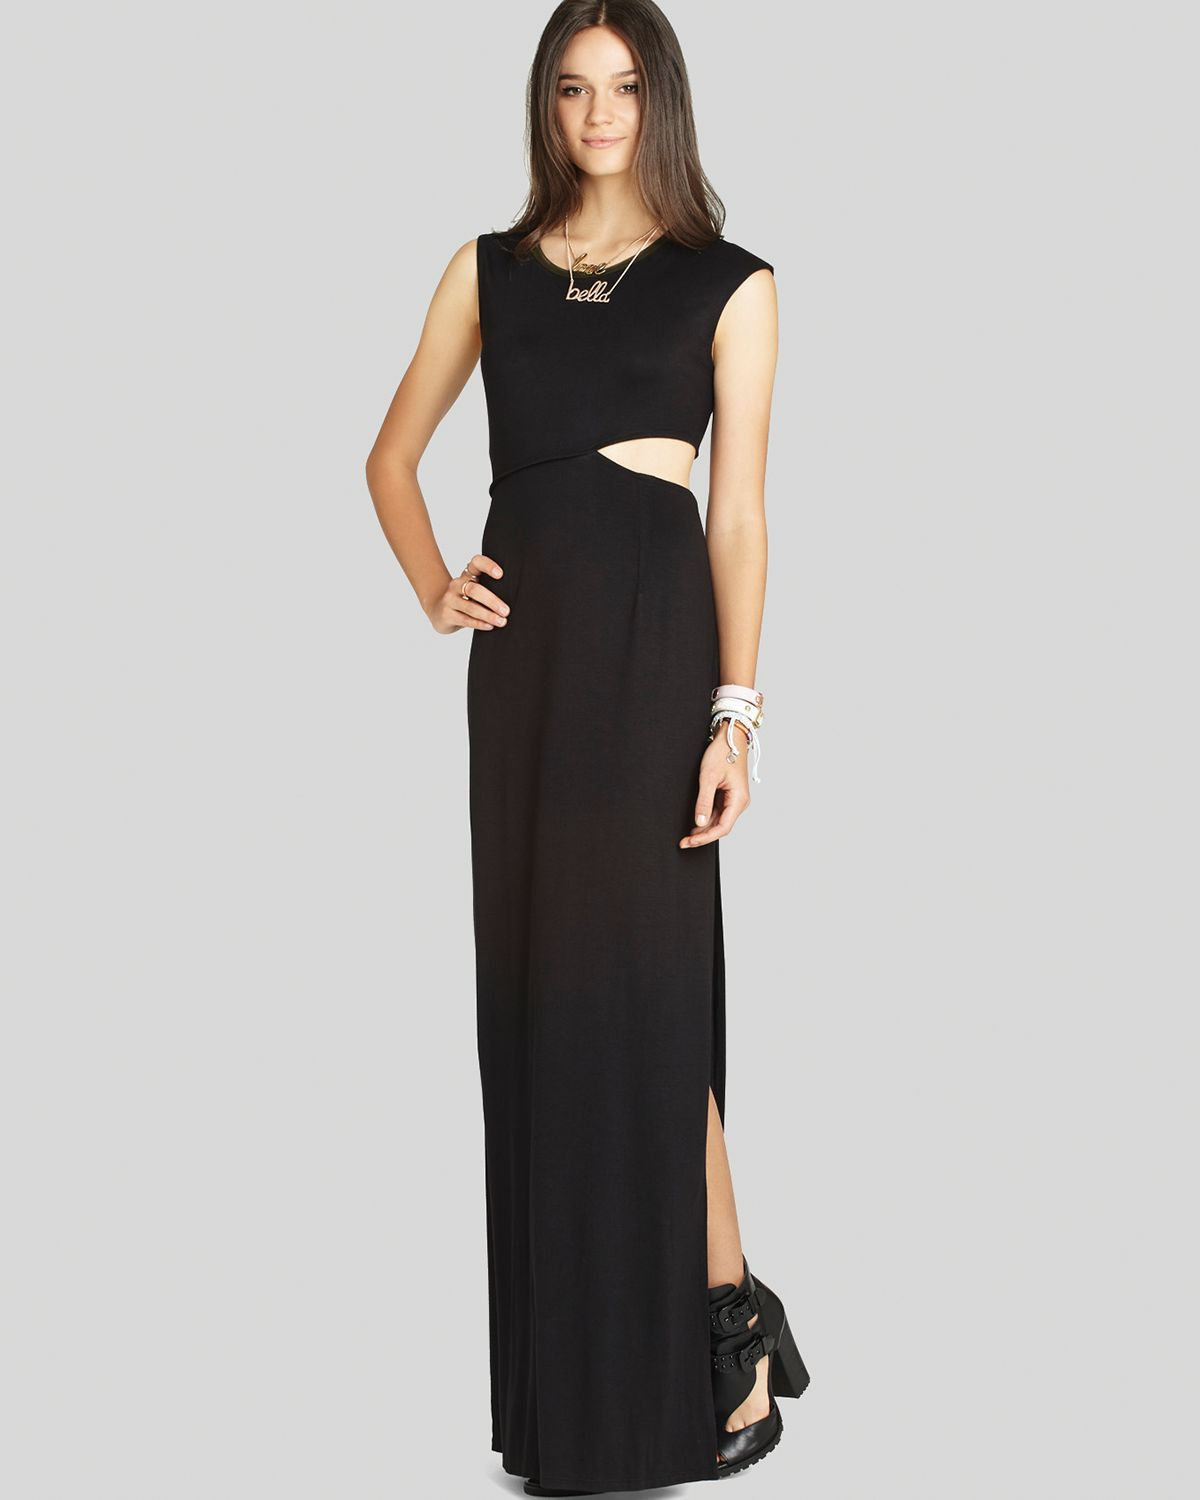 Bcbgeneration maxi dress - back cutout